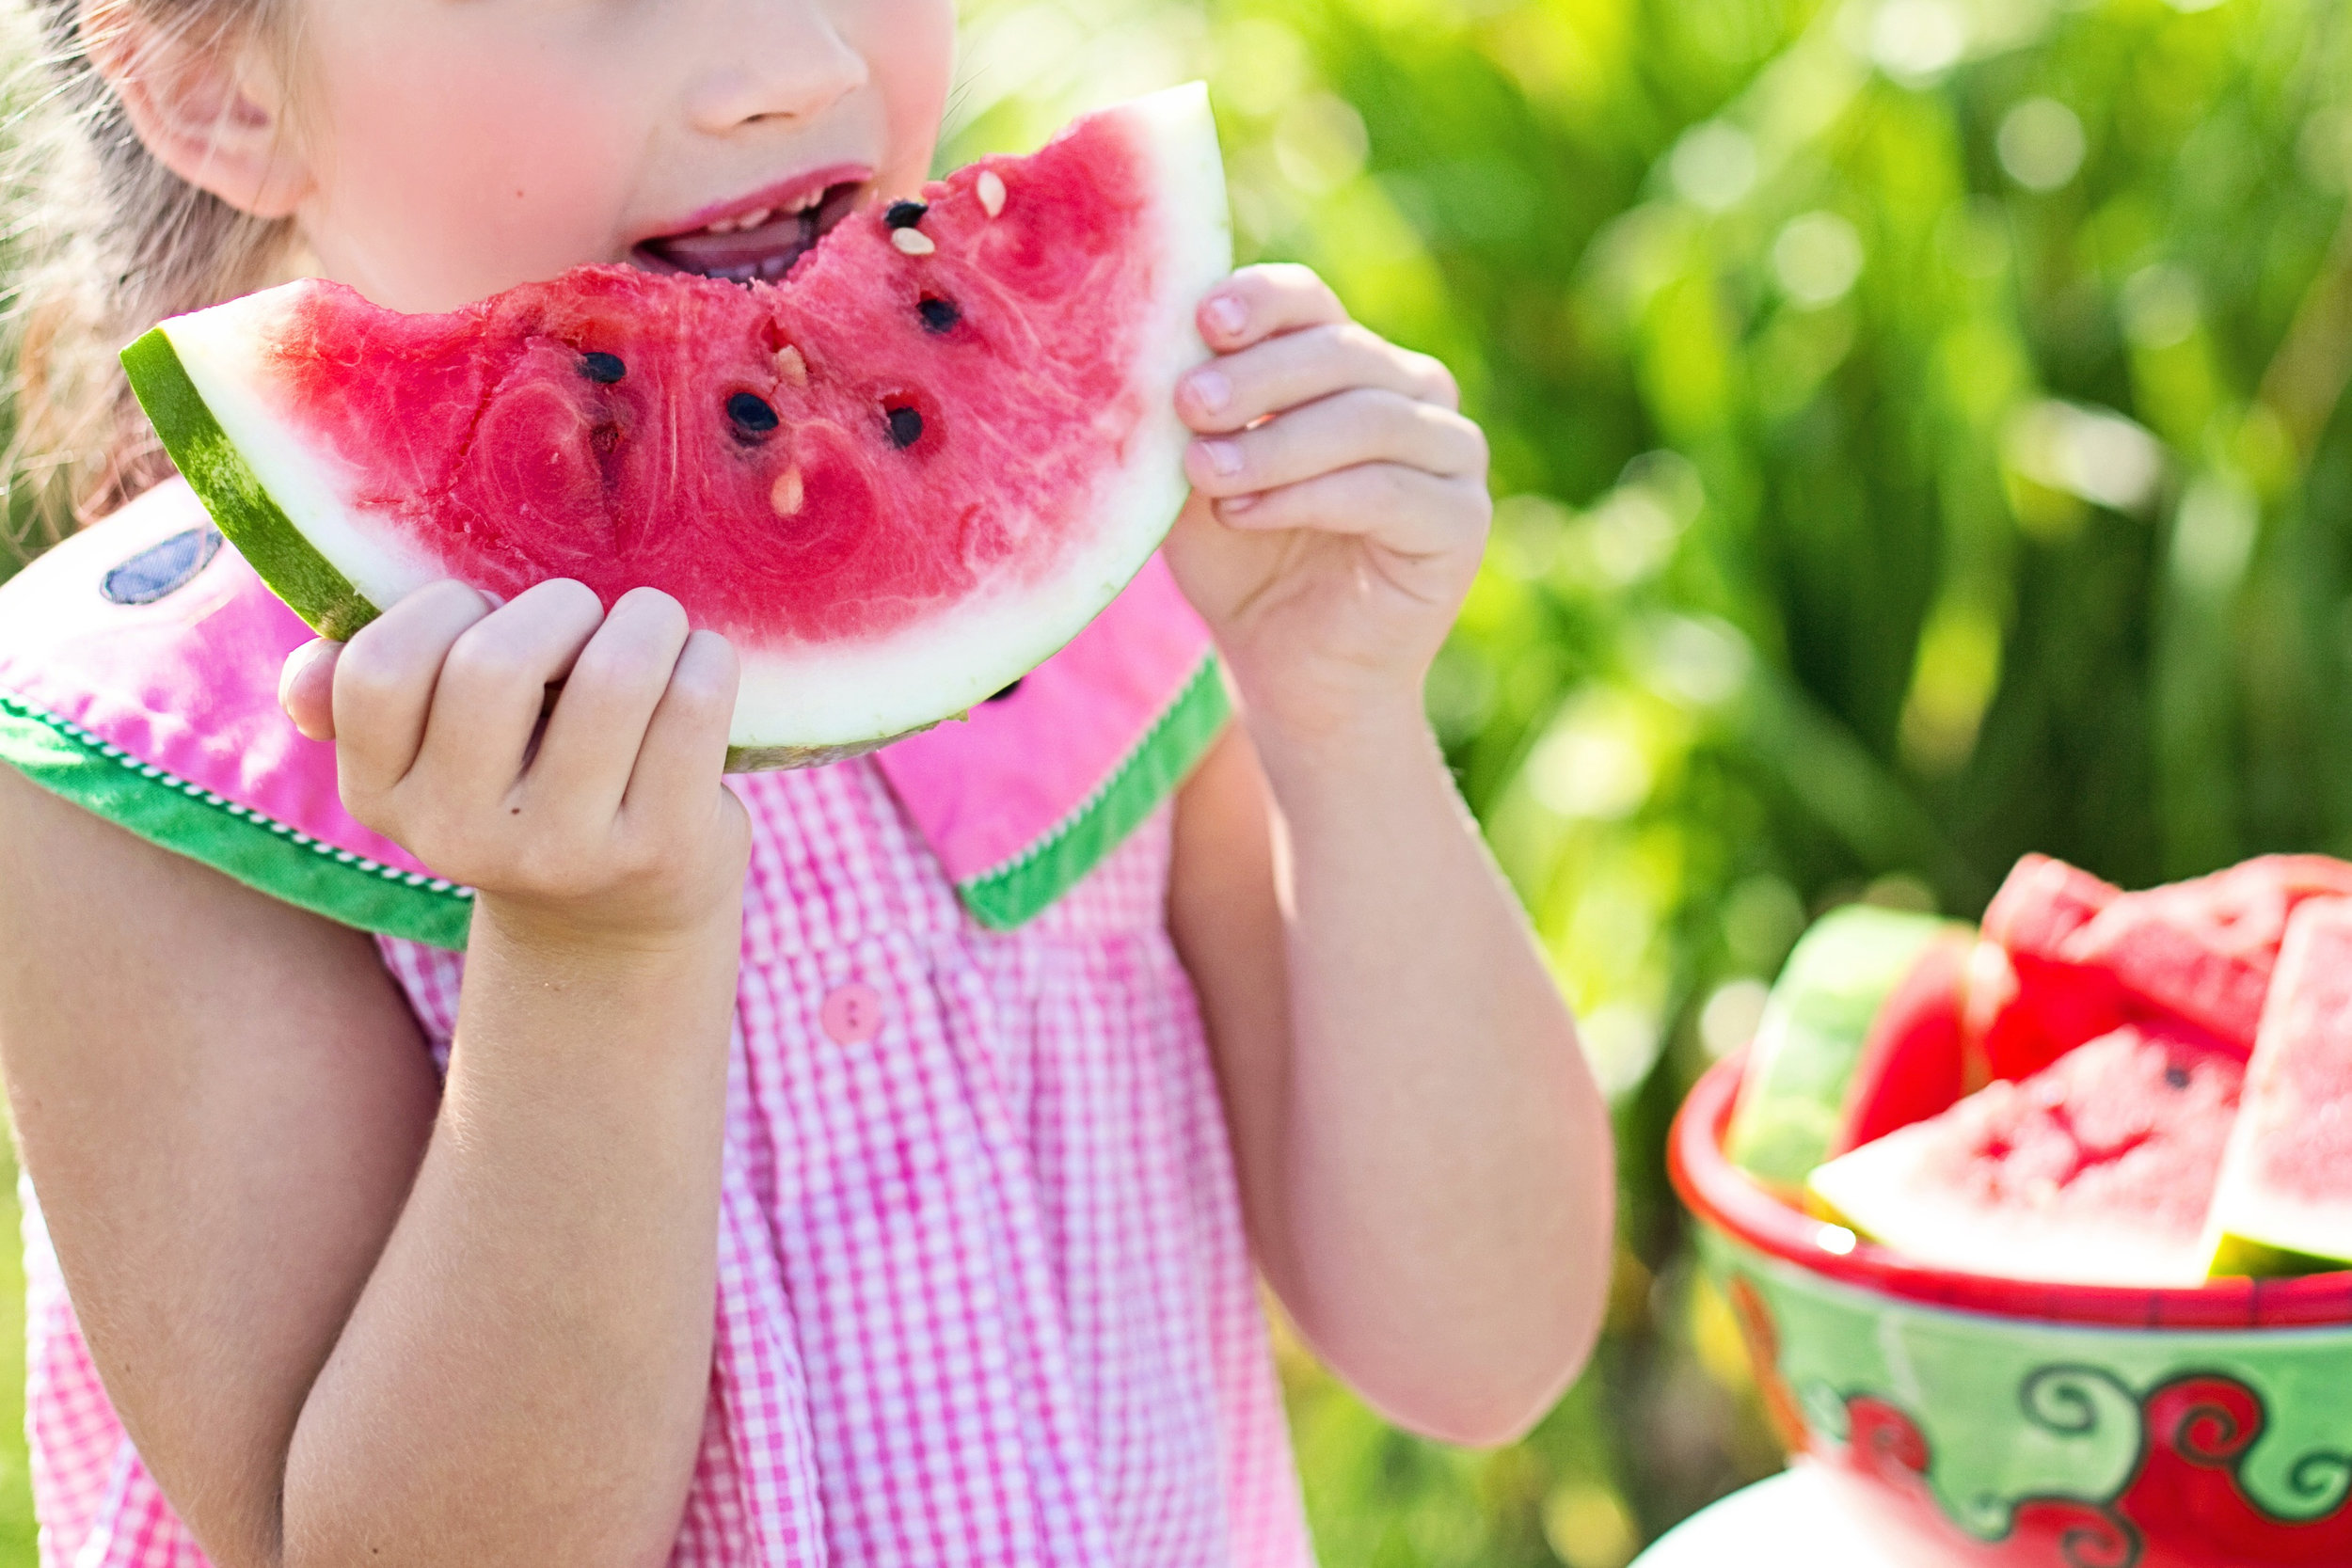 Canva - Girl Eating Sliced Watermelon Fruit Beside Table.jpg